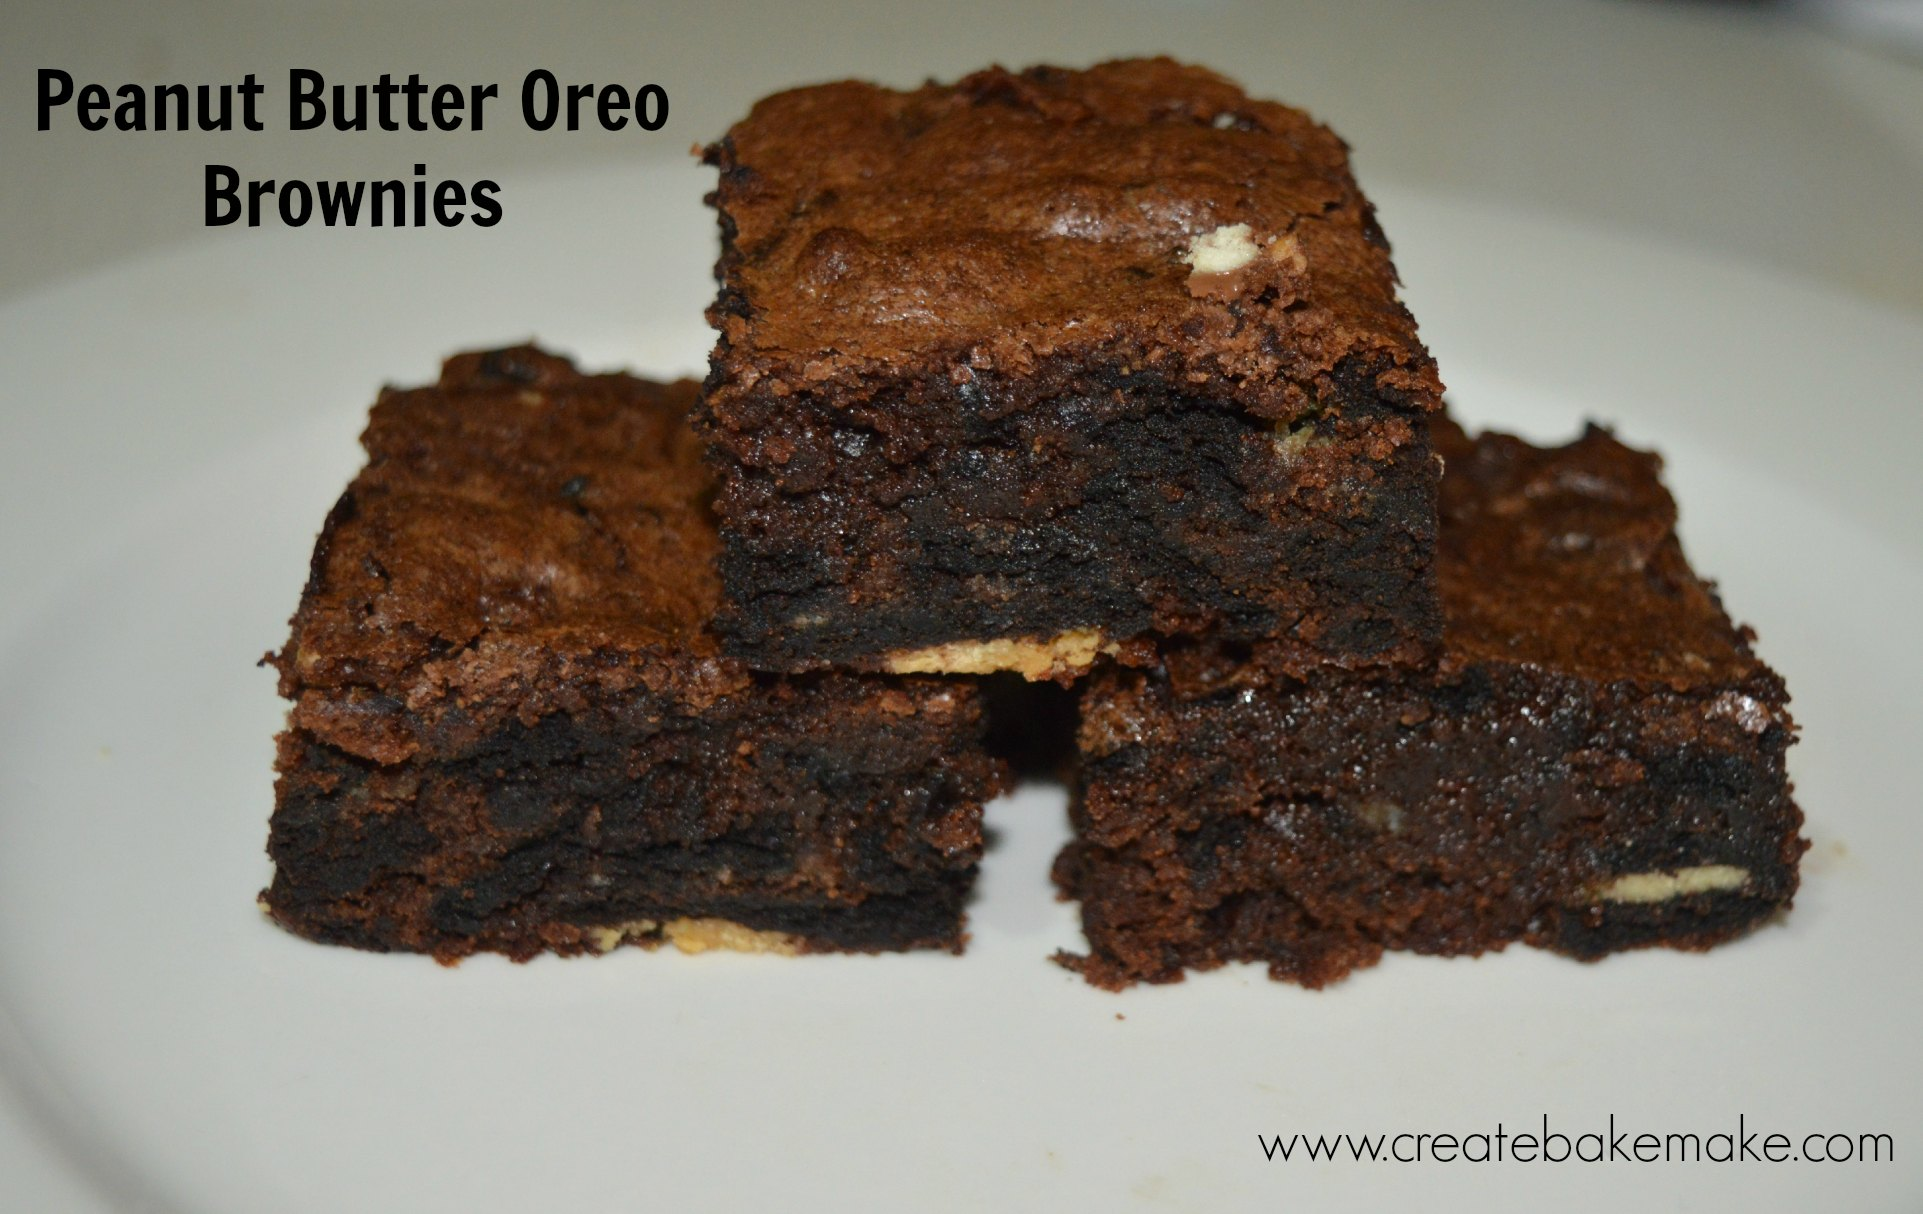 Fabulous Foodie Fridays #2 - Peanut Butter Oreo Brownies